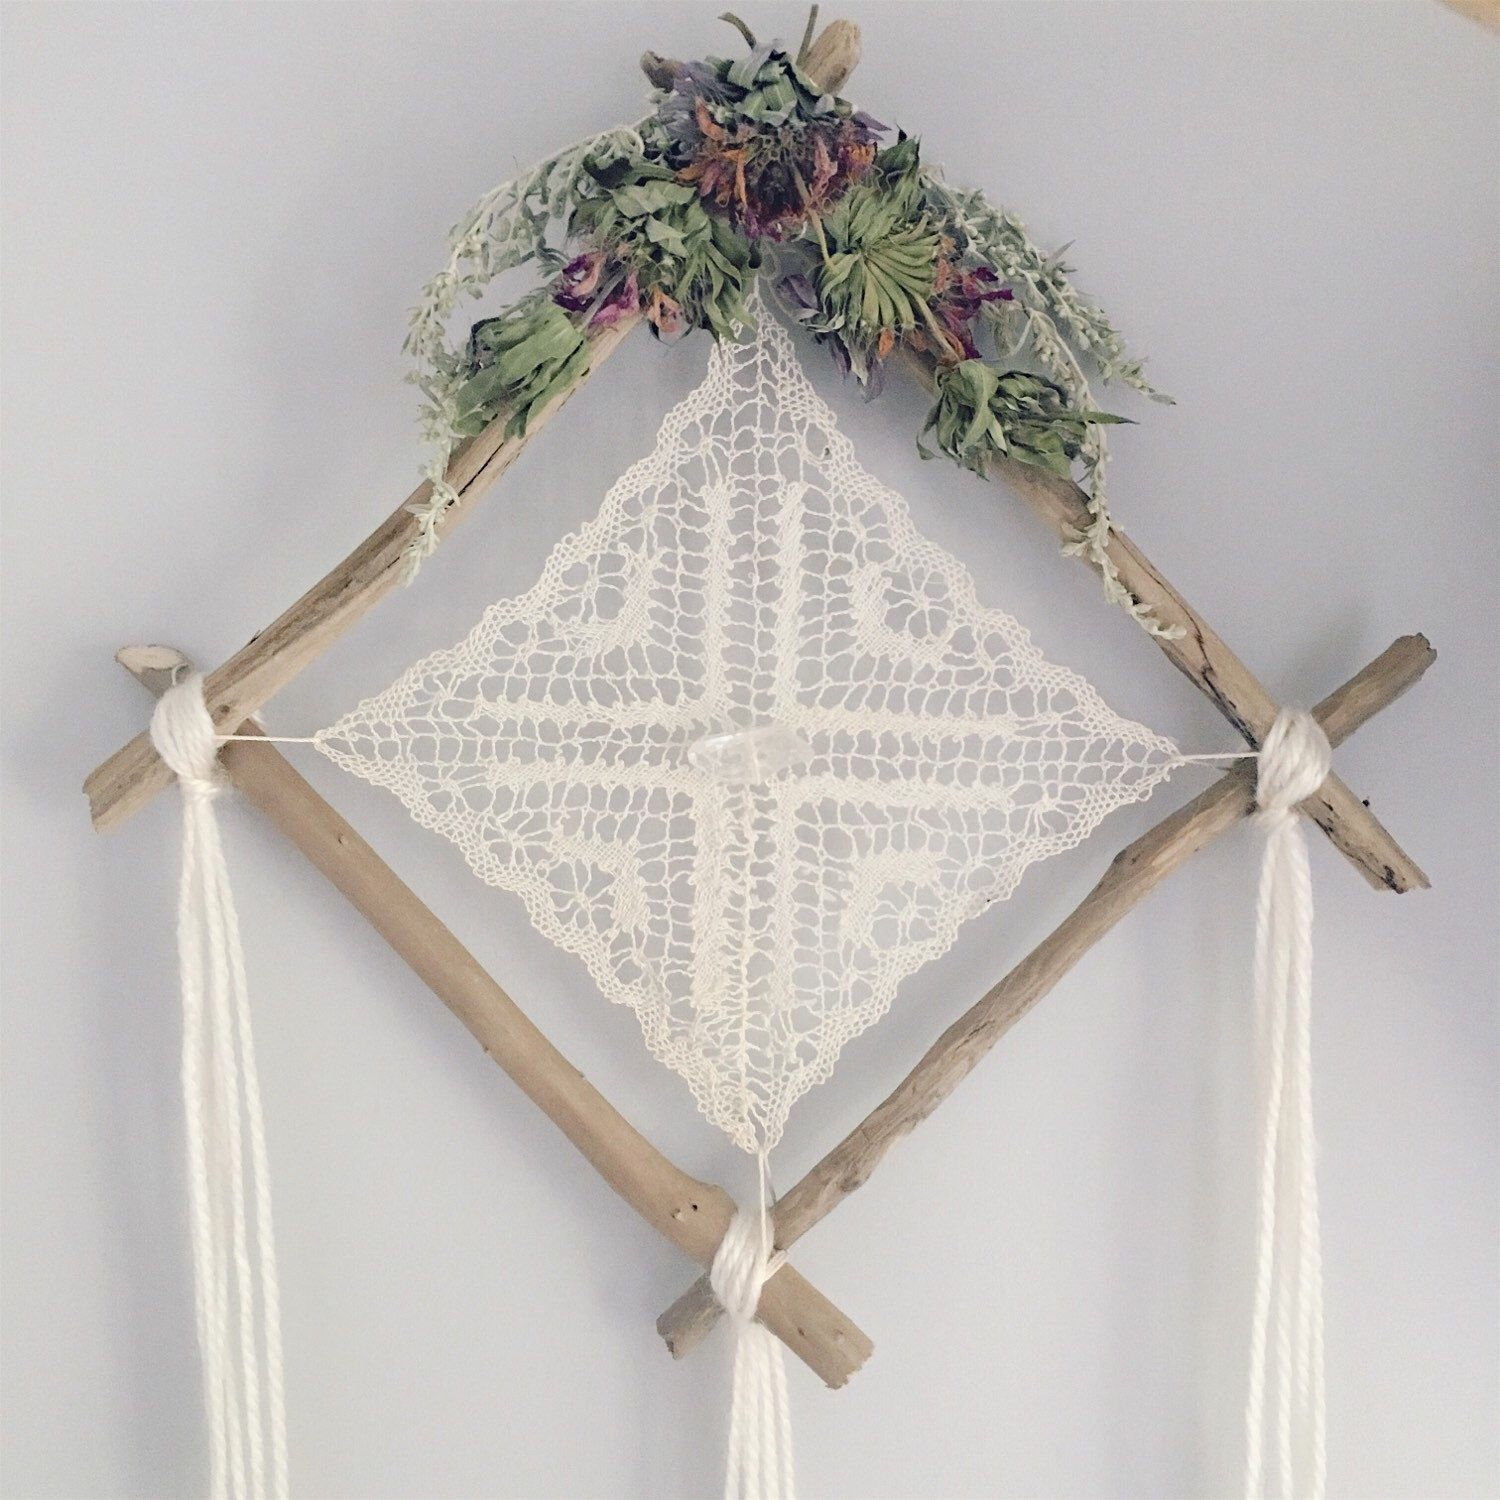 Pin by Laci Grush on TDL/DIY | Doily dream catchers, Dream ...